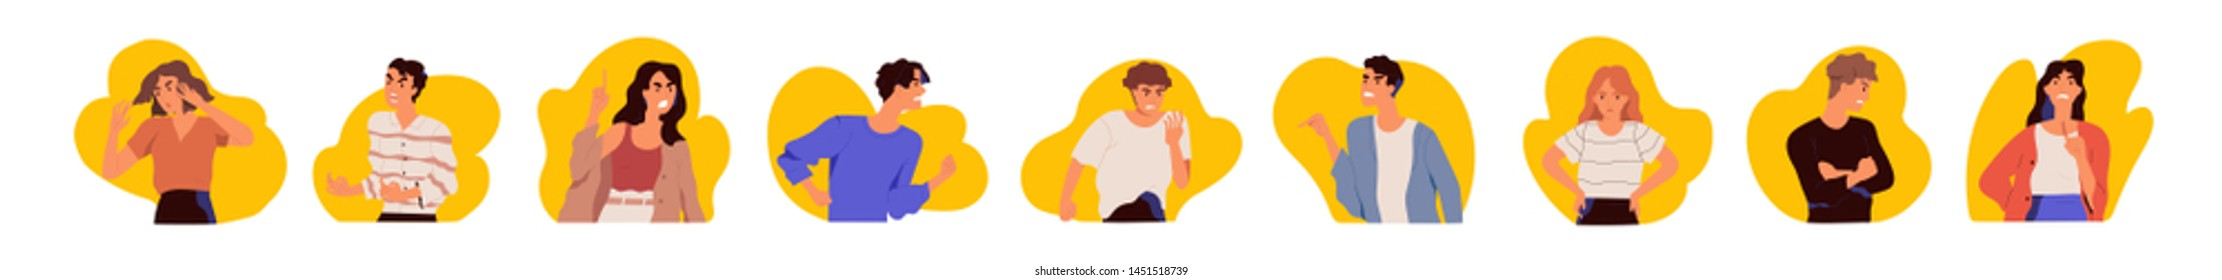 Collection of portraits of young men and women expressing anger, wrath, rage, fury. Bundle of angry, grumpy, irate or furious people isolated on white background. Flat cartoon vector illustration.